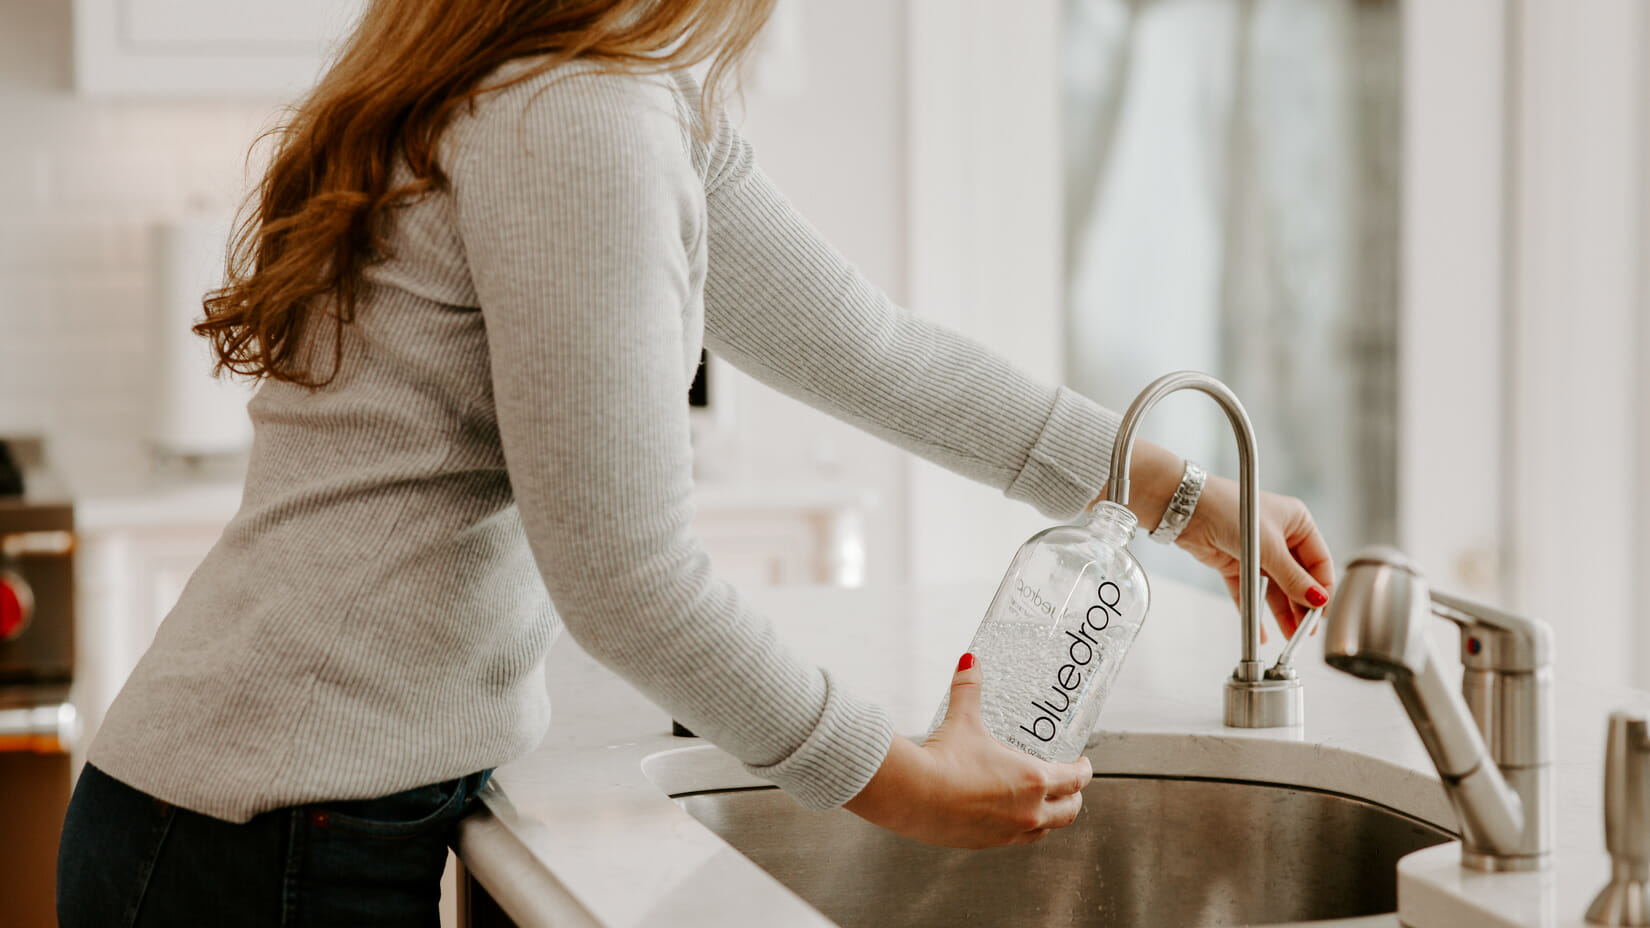 A person filling their water bottle with water from the sink.